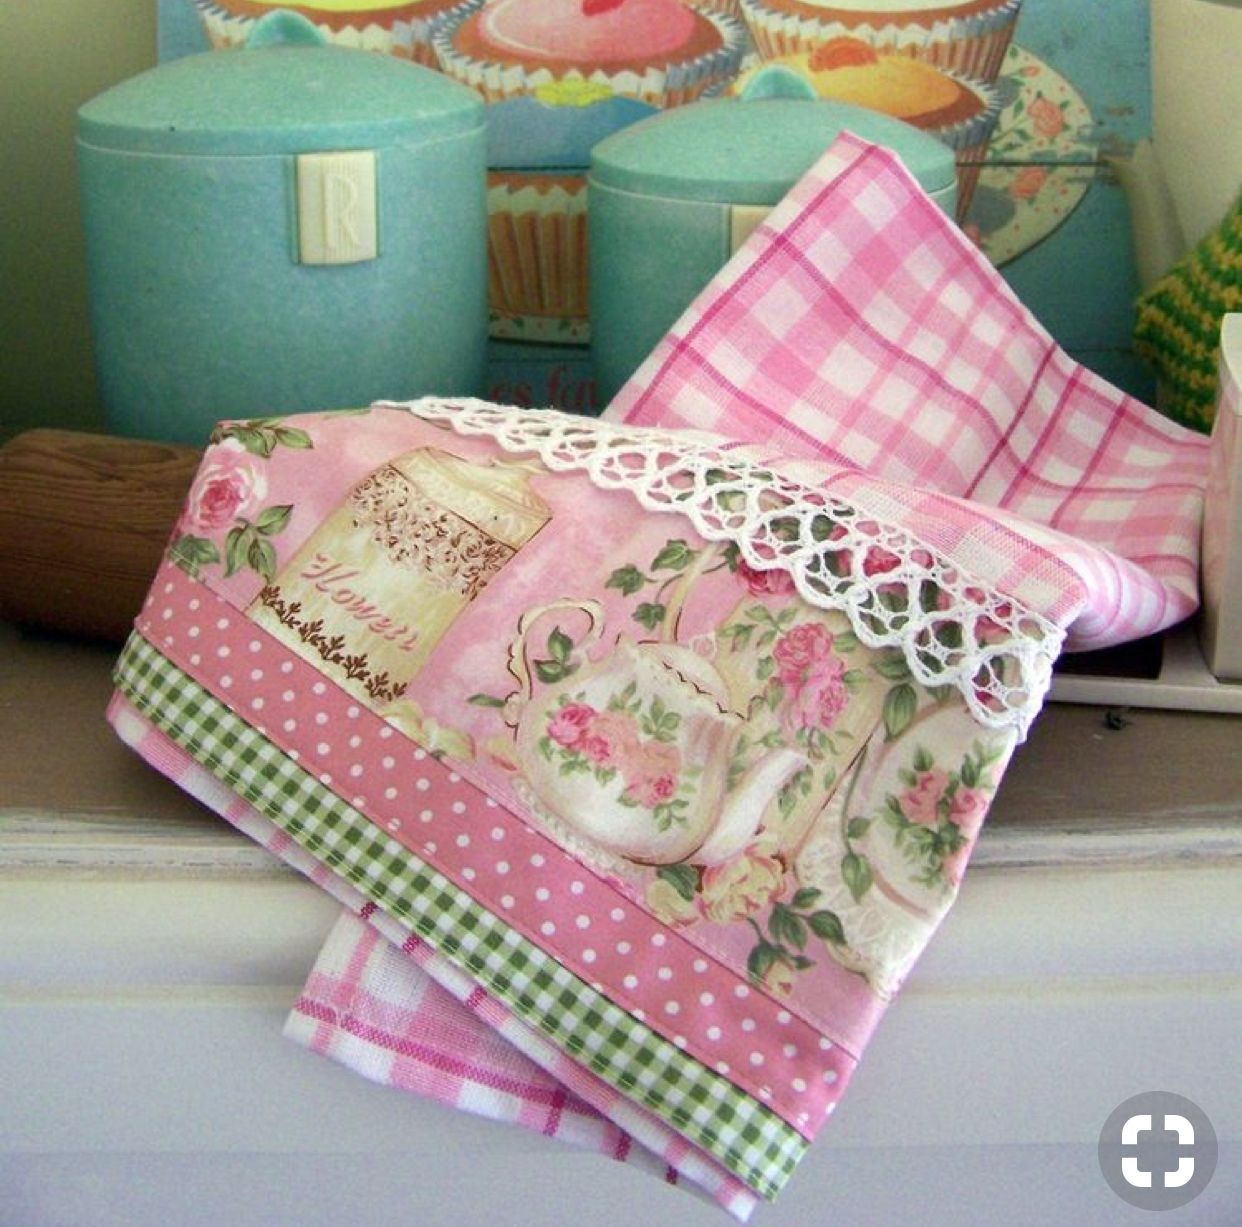 Pin By Leila Eufrazio On Kitchen Towels Decorative Towels Vintage Linens Shabby Chic Crafts